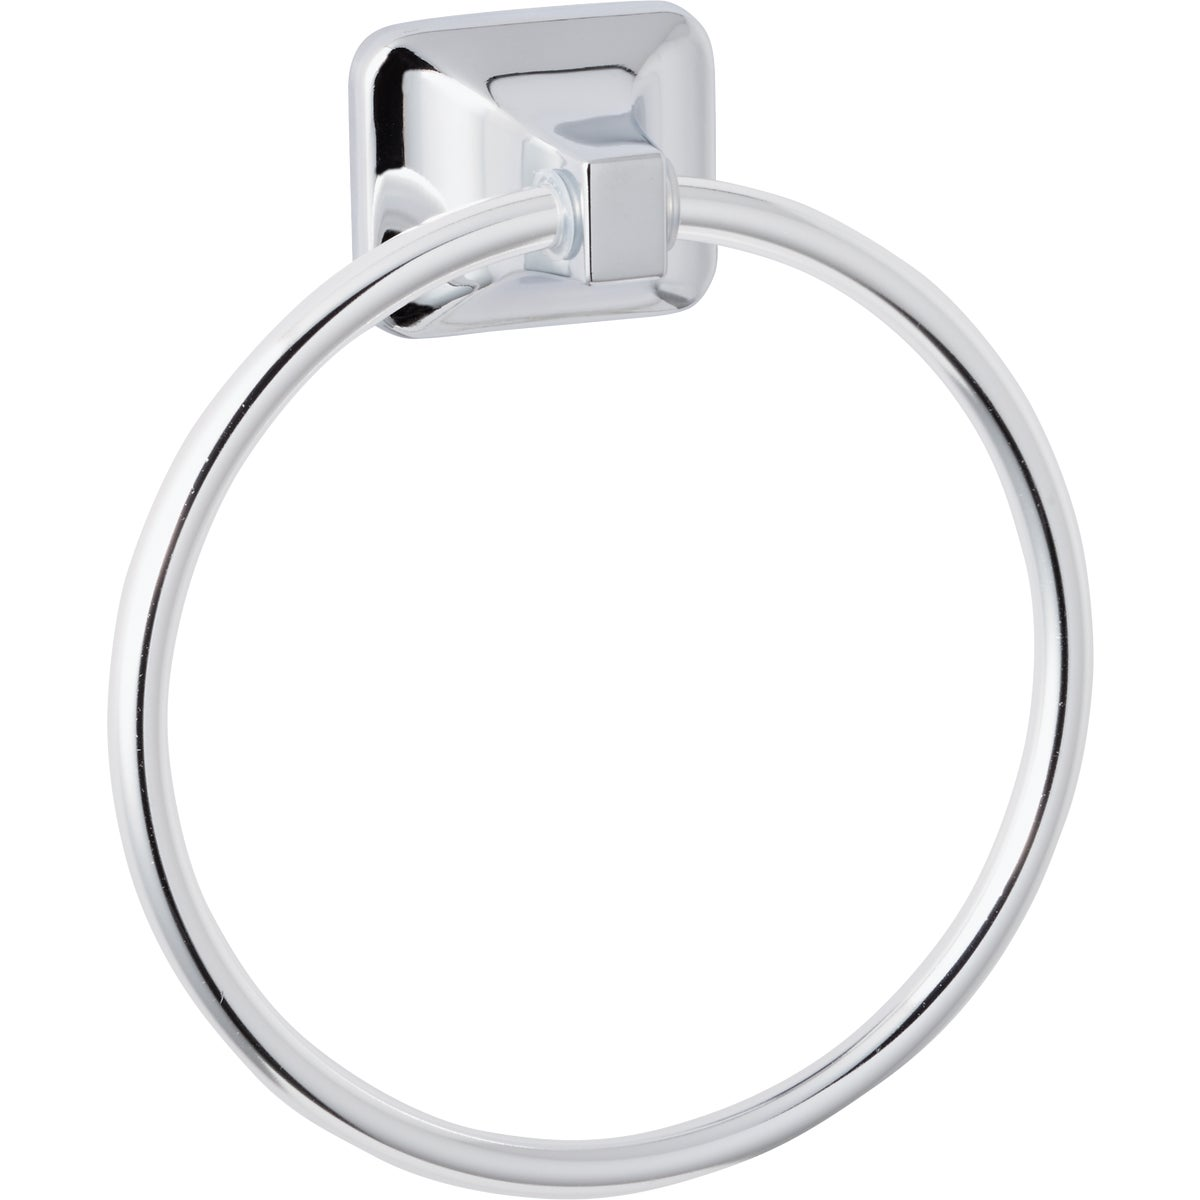 CHROME TOWEL RING - 409105 by Do it Best